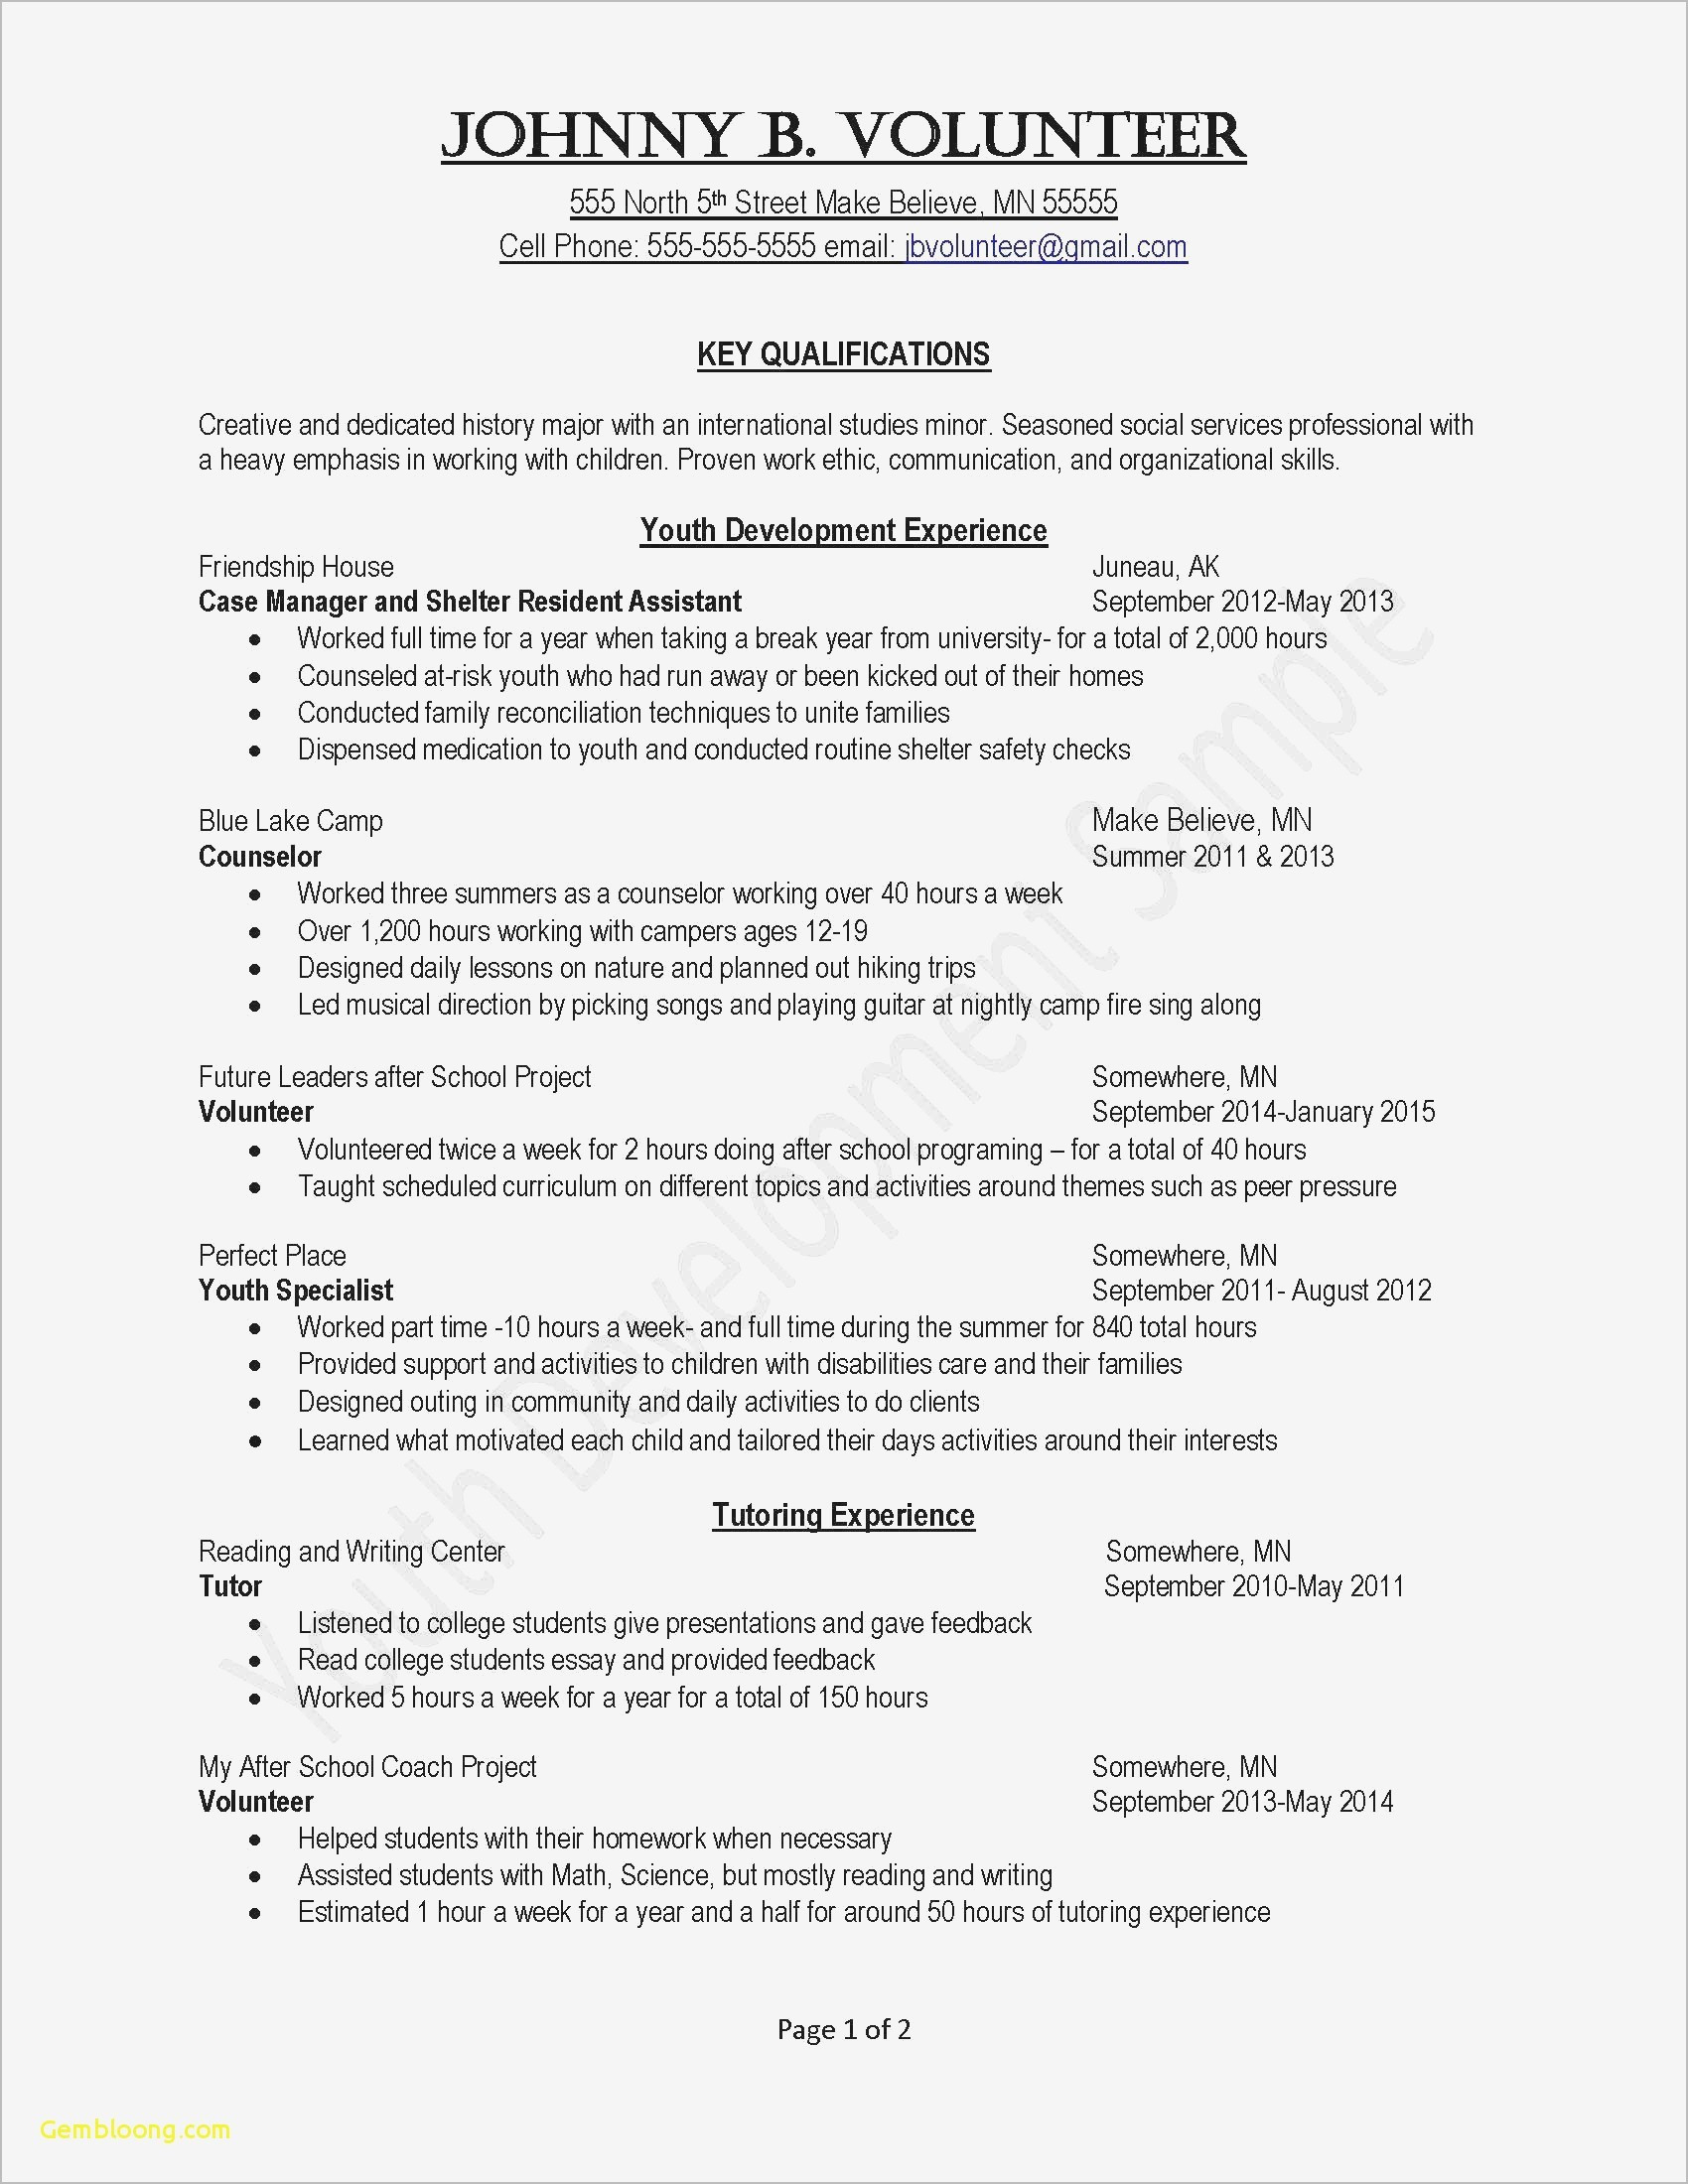 Free Resume Service - New format for Resume Fresh Word format Resume Free Blank Resume